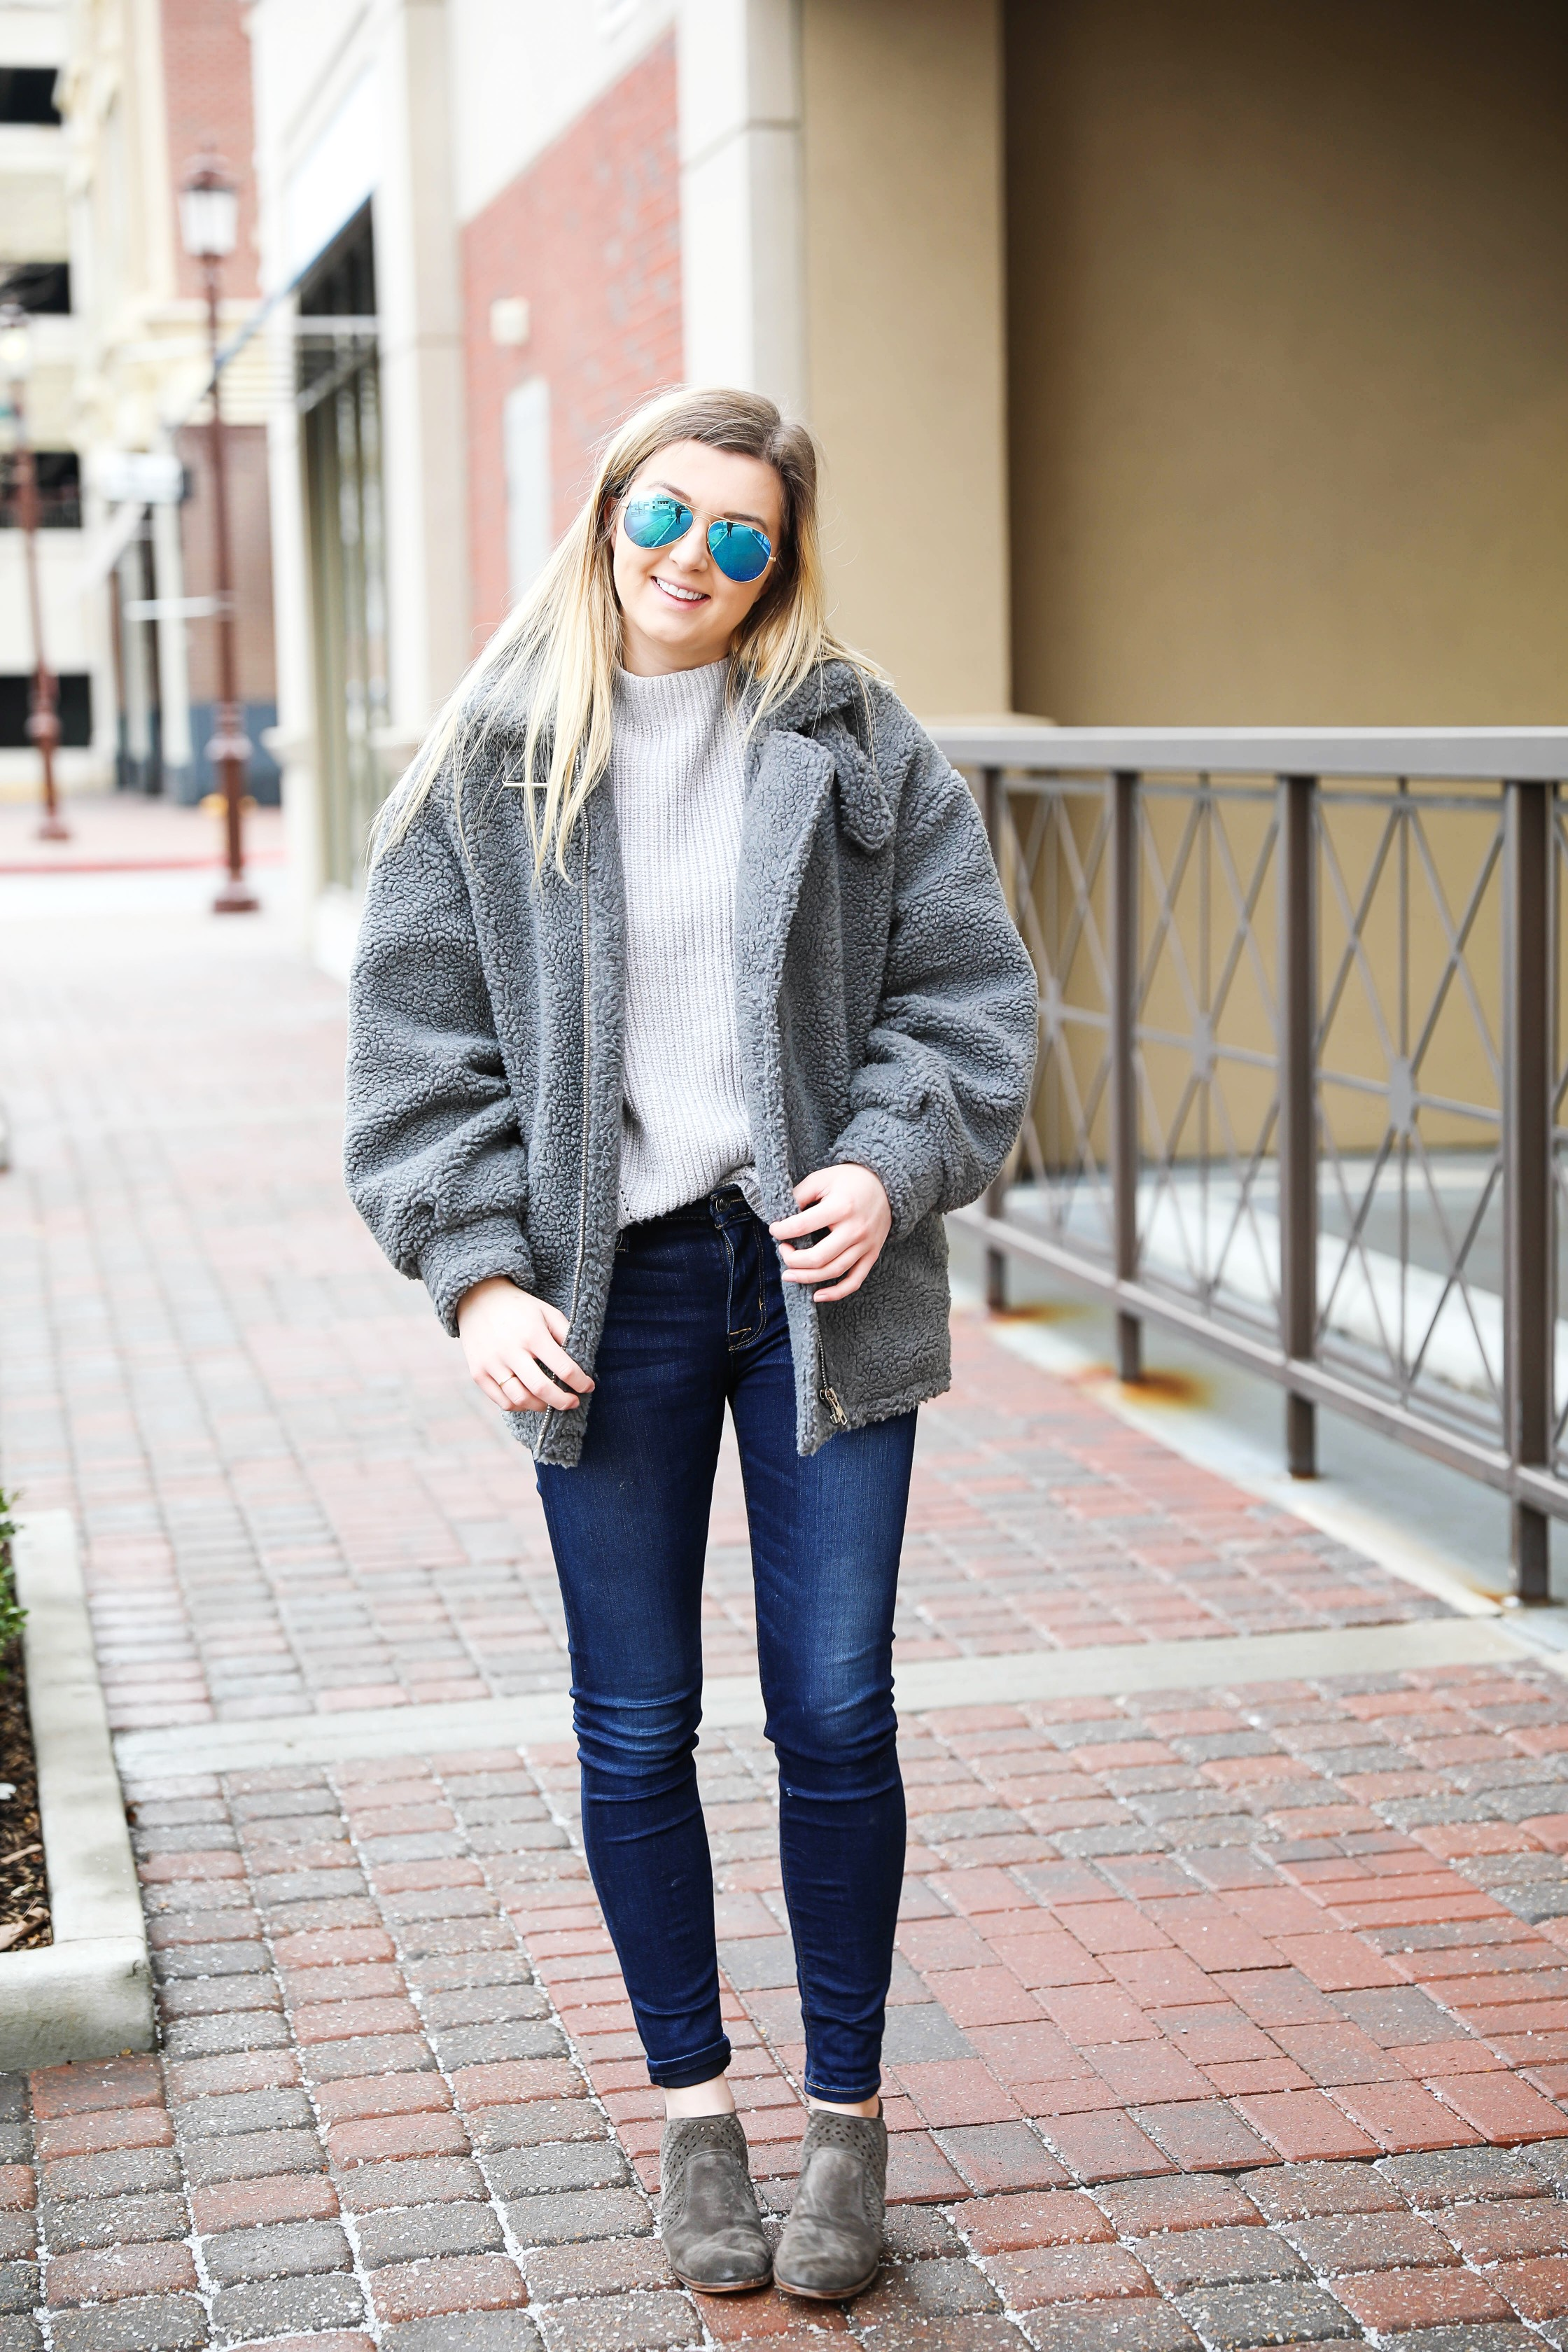 Fuzzy grey aviator coat! Paired this soft jacket with my favorite ray ban blue mirrored aviators! Details on fashion blog daily dose of charm by lauren lindmark